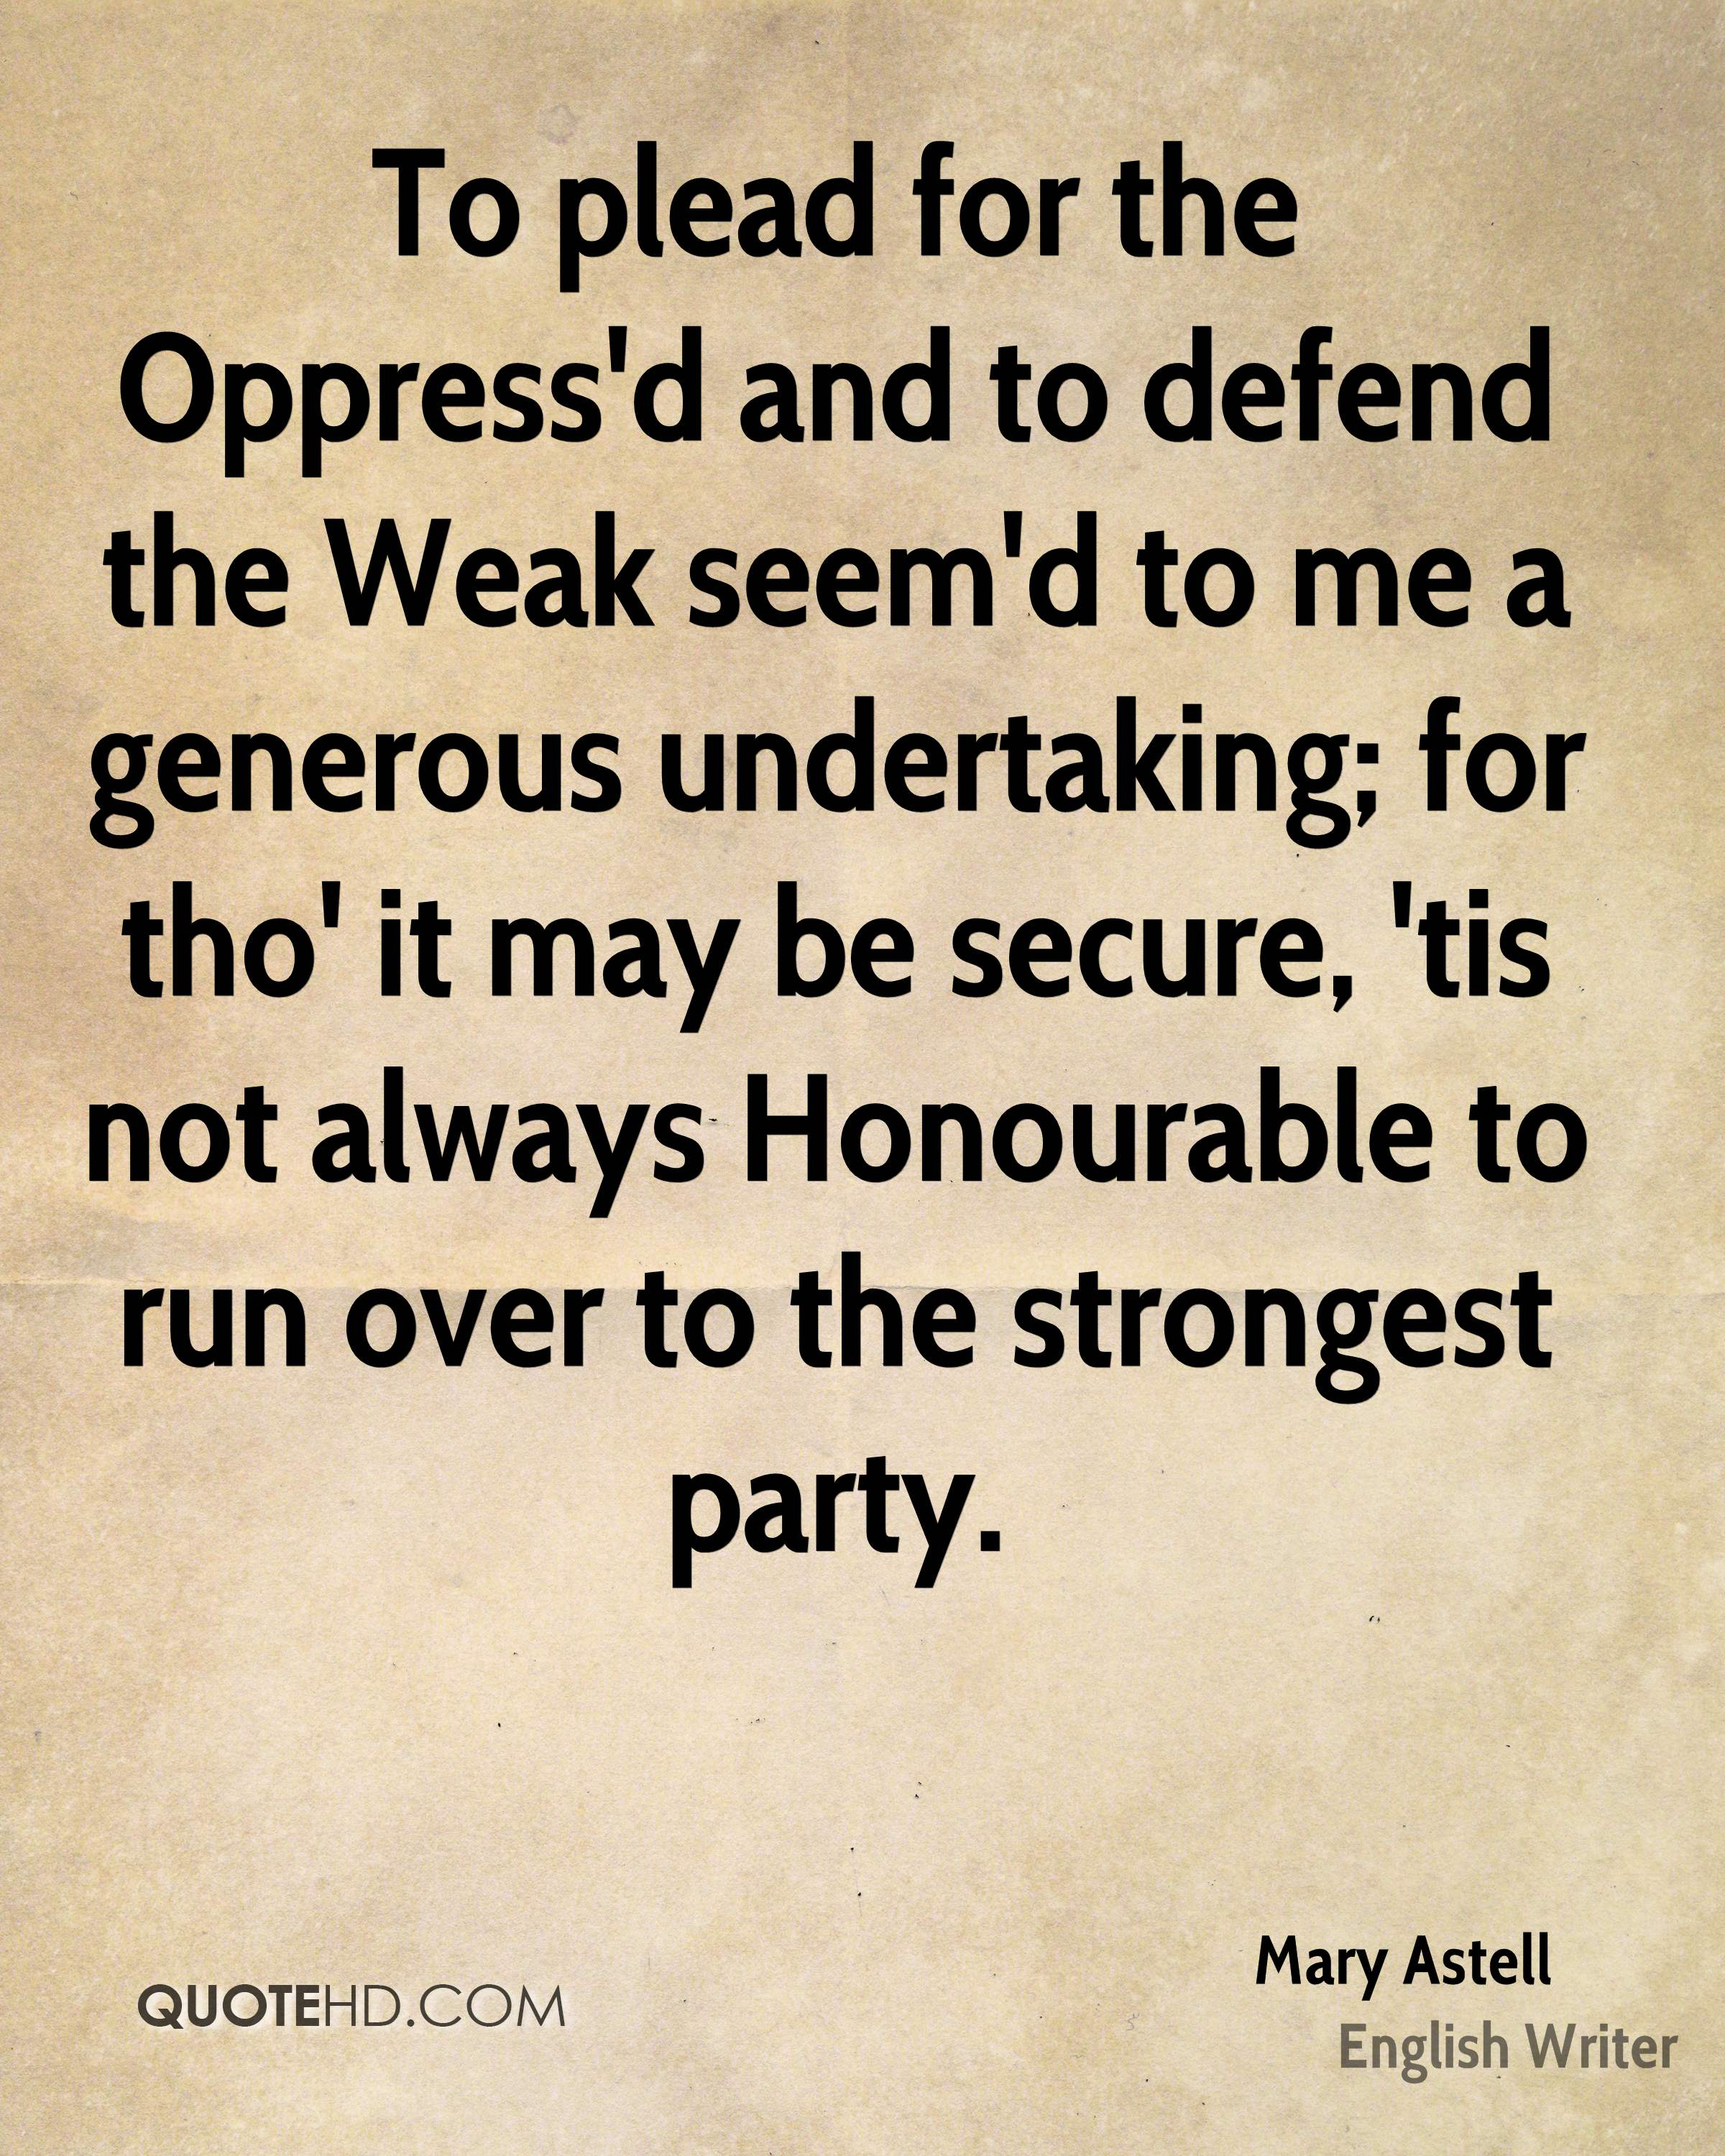 To plead for the Oppress'd and to defend the Weak seem'd to me a generous undertaking; for tho' it may be secure, 'tis not always Honourable to run over to the strongest party.